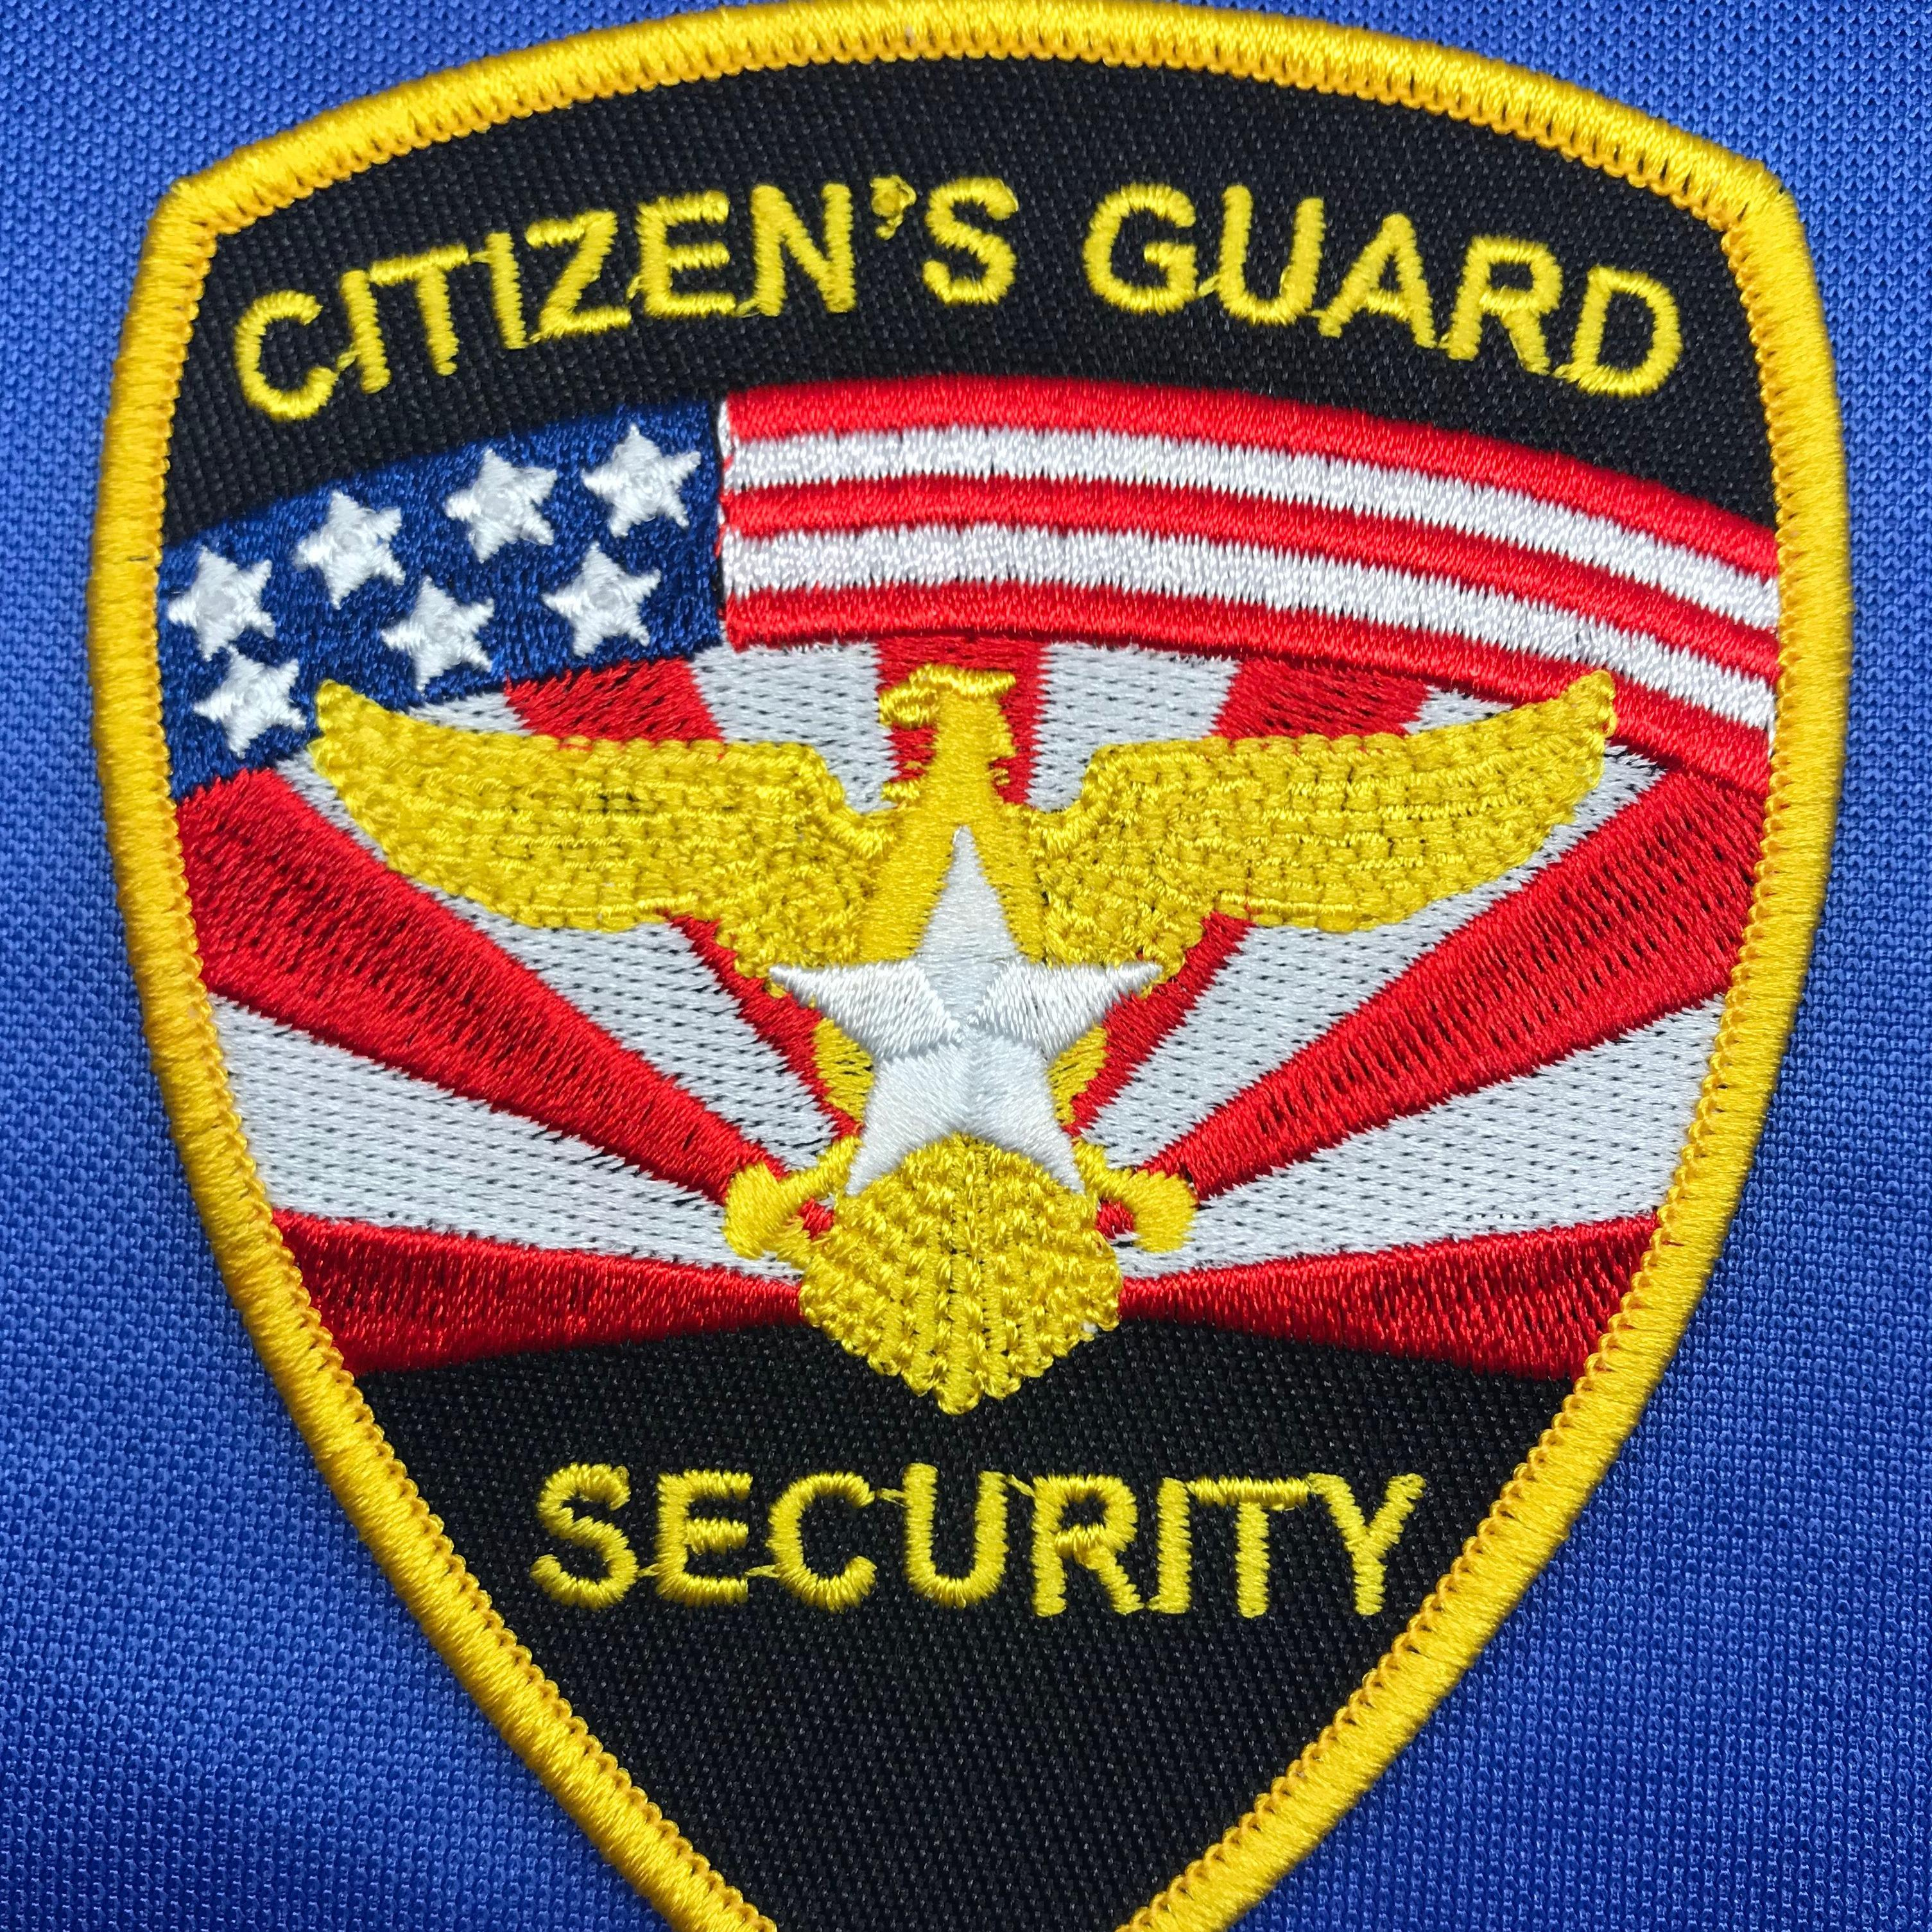 Citizens Guard Security - Tallahassee, FL 32301 - (877)322-8770   ShowMeLocal.com